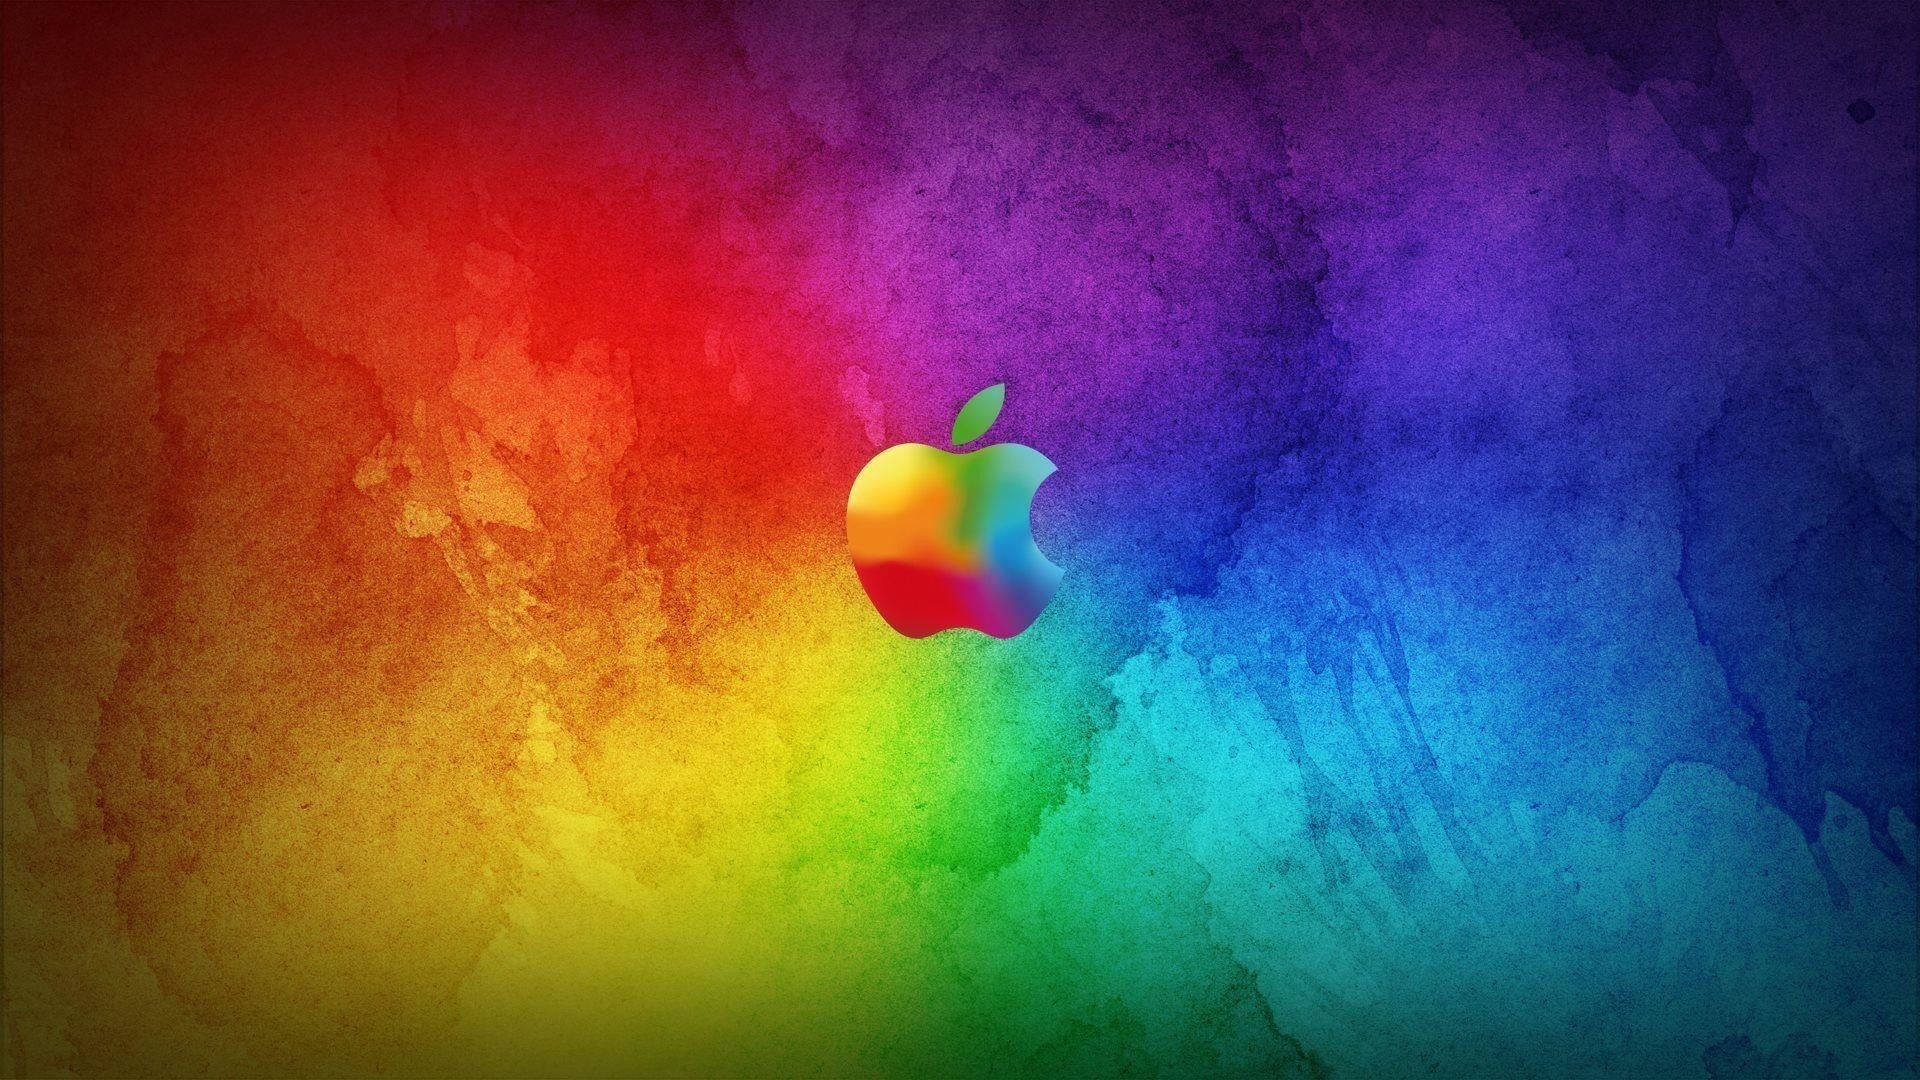 Cool apple logo wallpaper wallpapertag for Immagini apple hd